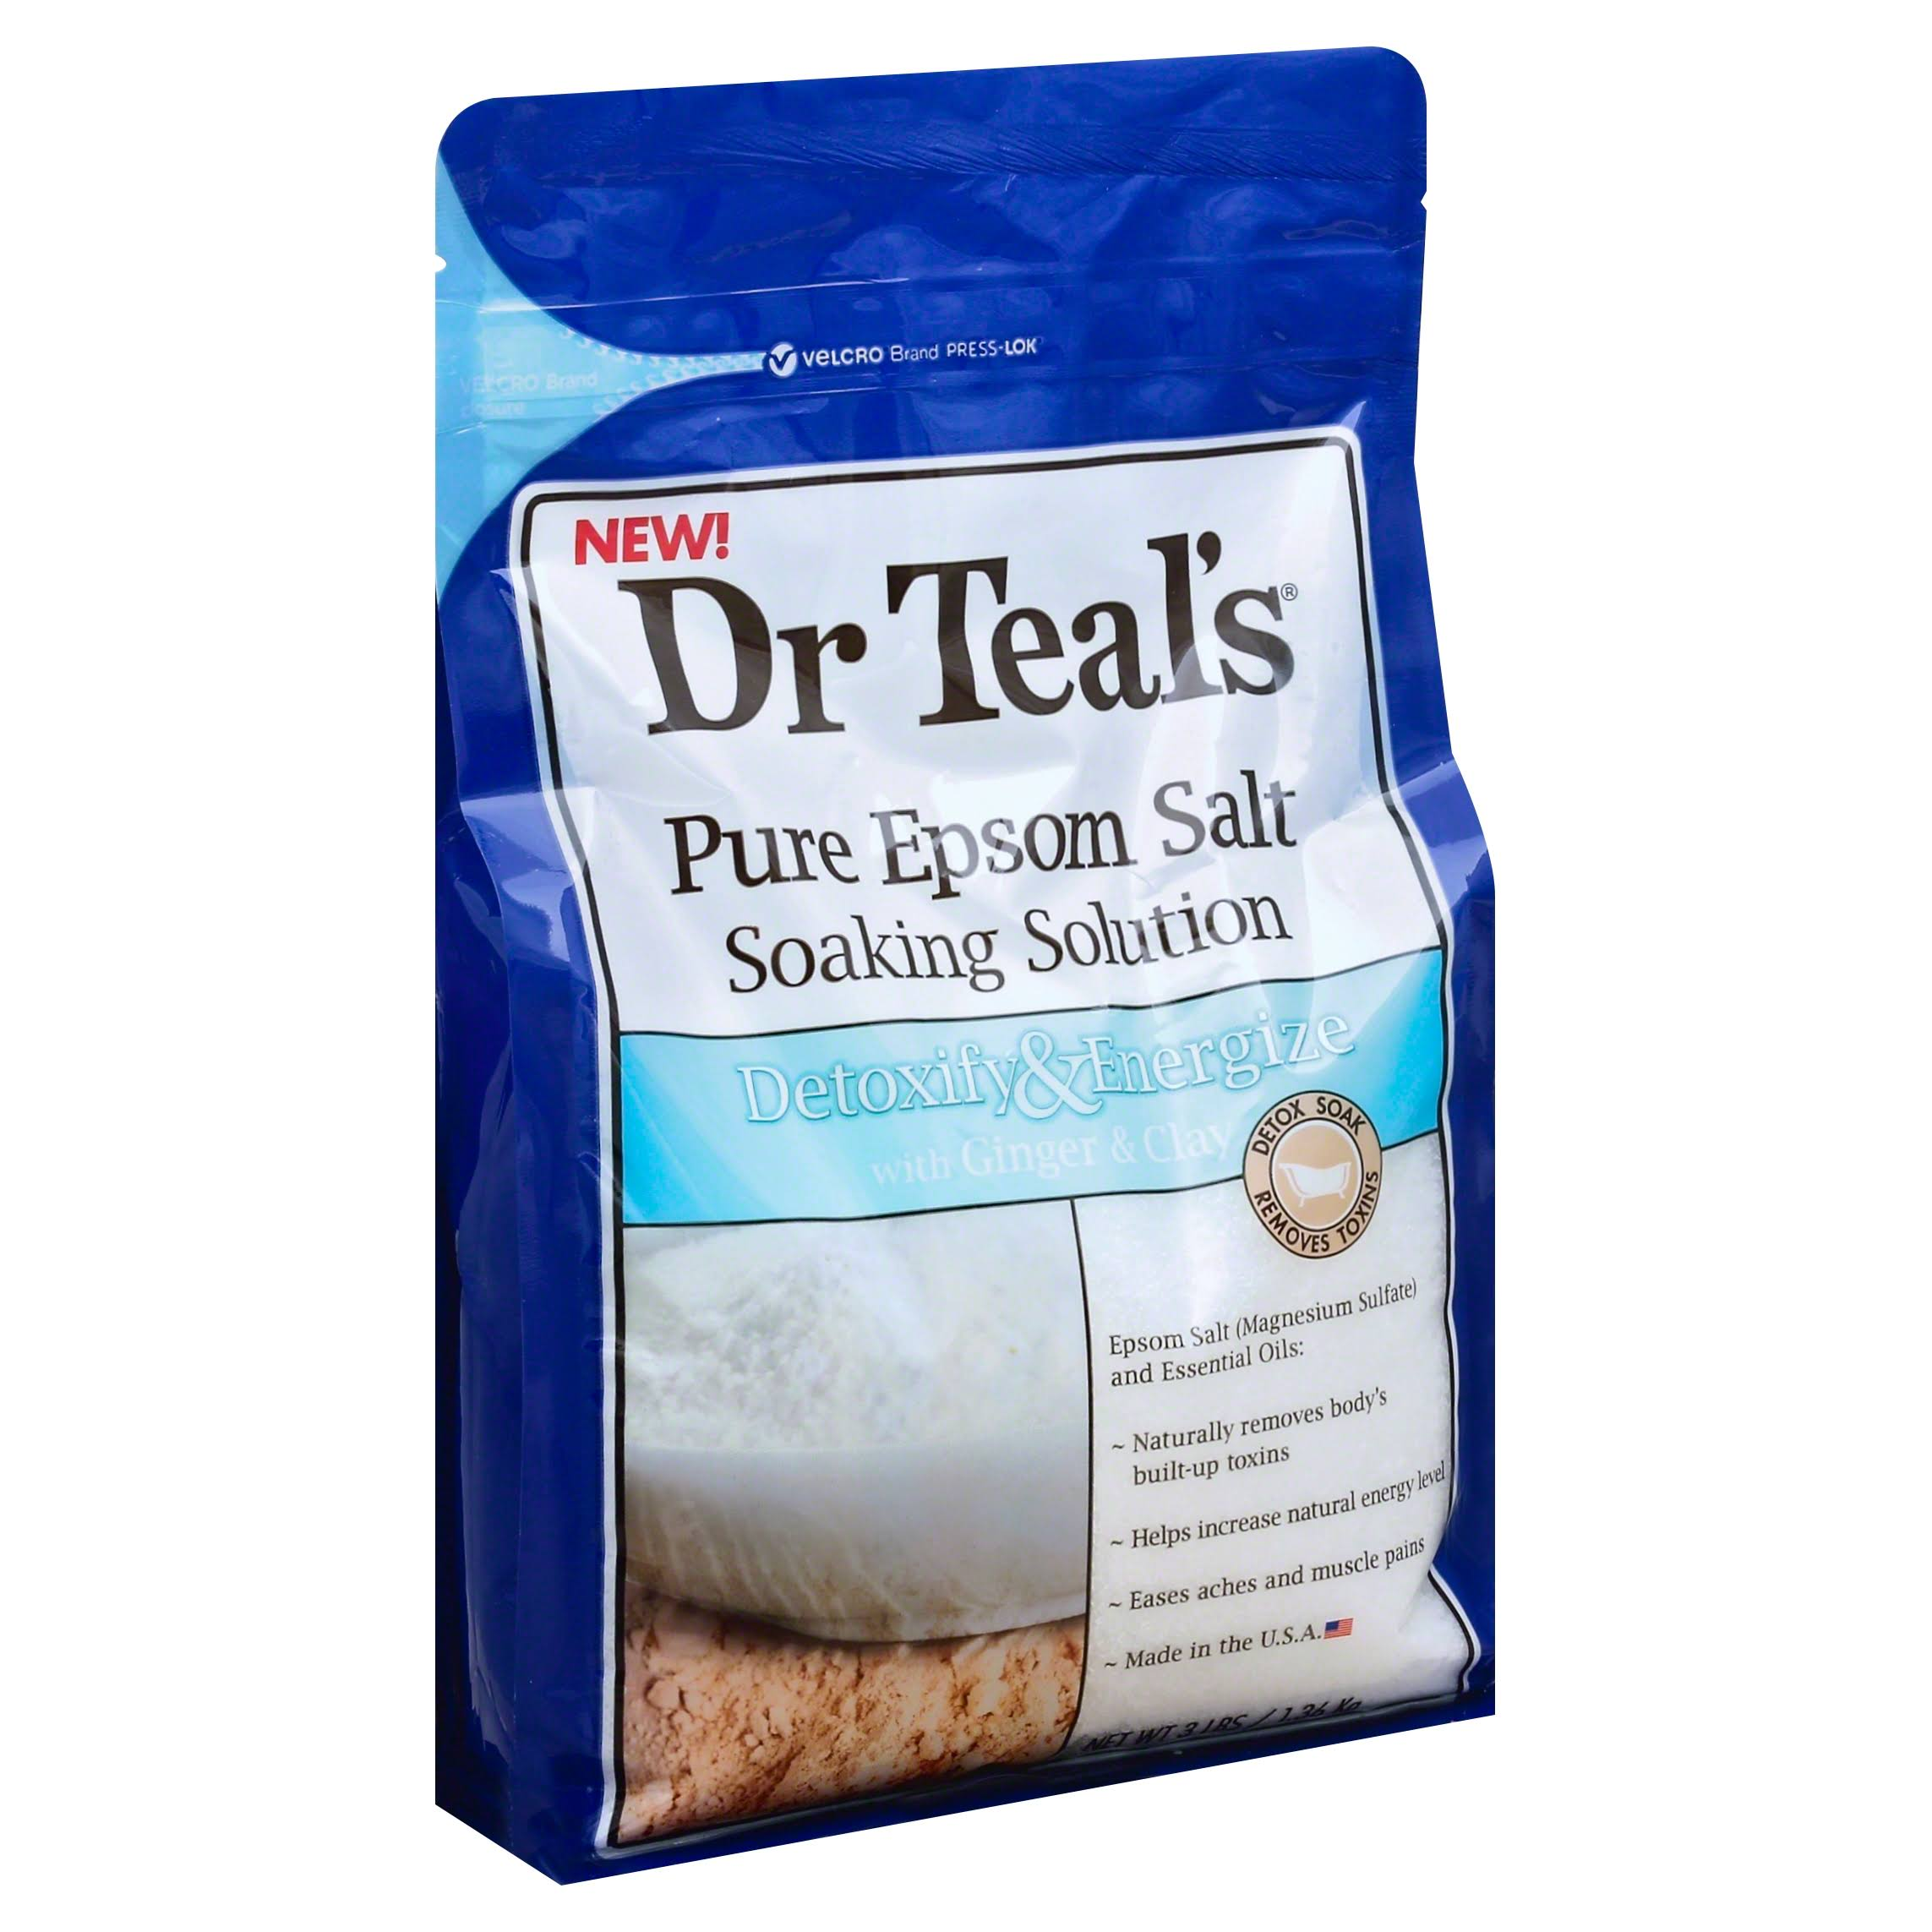 Dr Teal's Pure Epsom Salt Soaking Solution - 3lbs